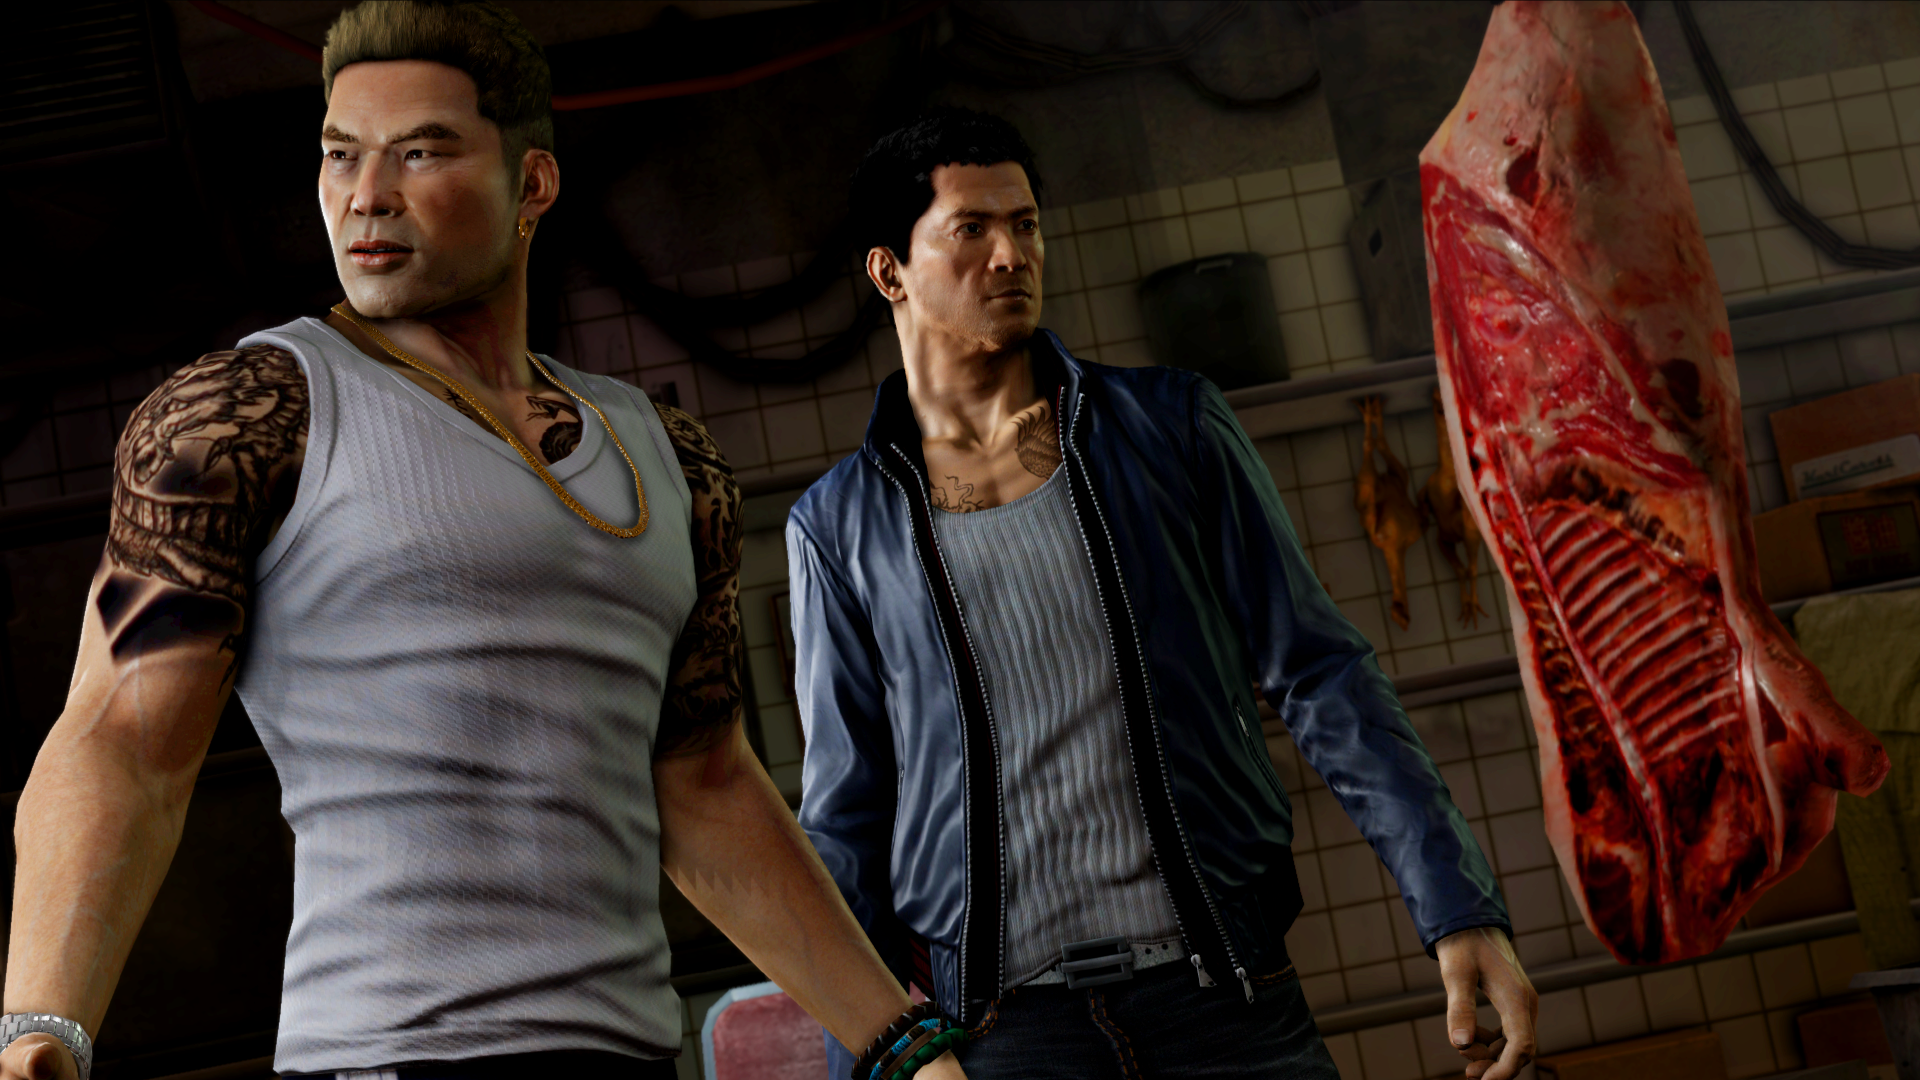 Goodie Monster Achievement in Sleeping Dogs: Definitive